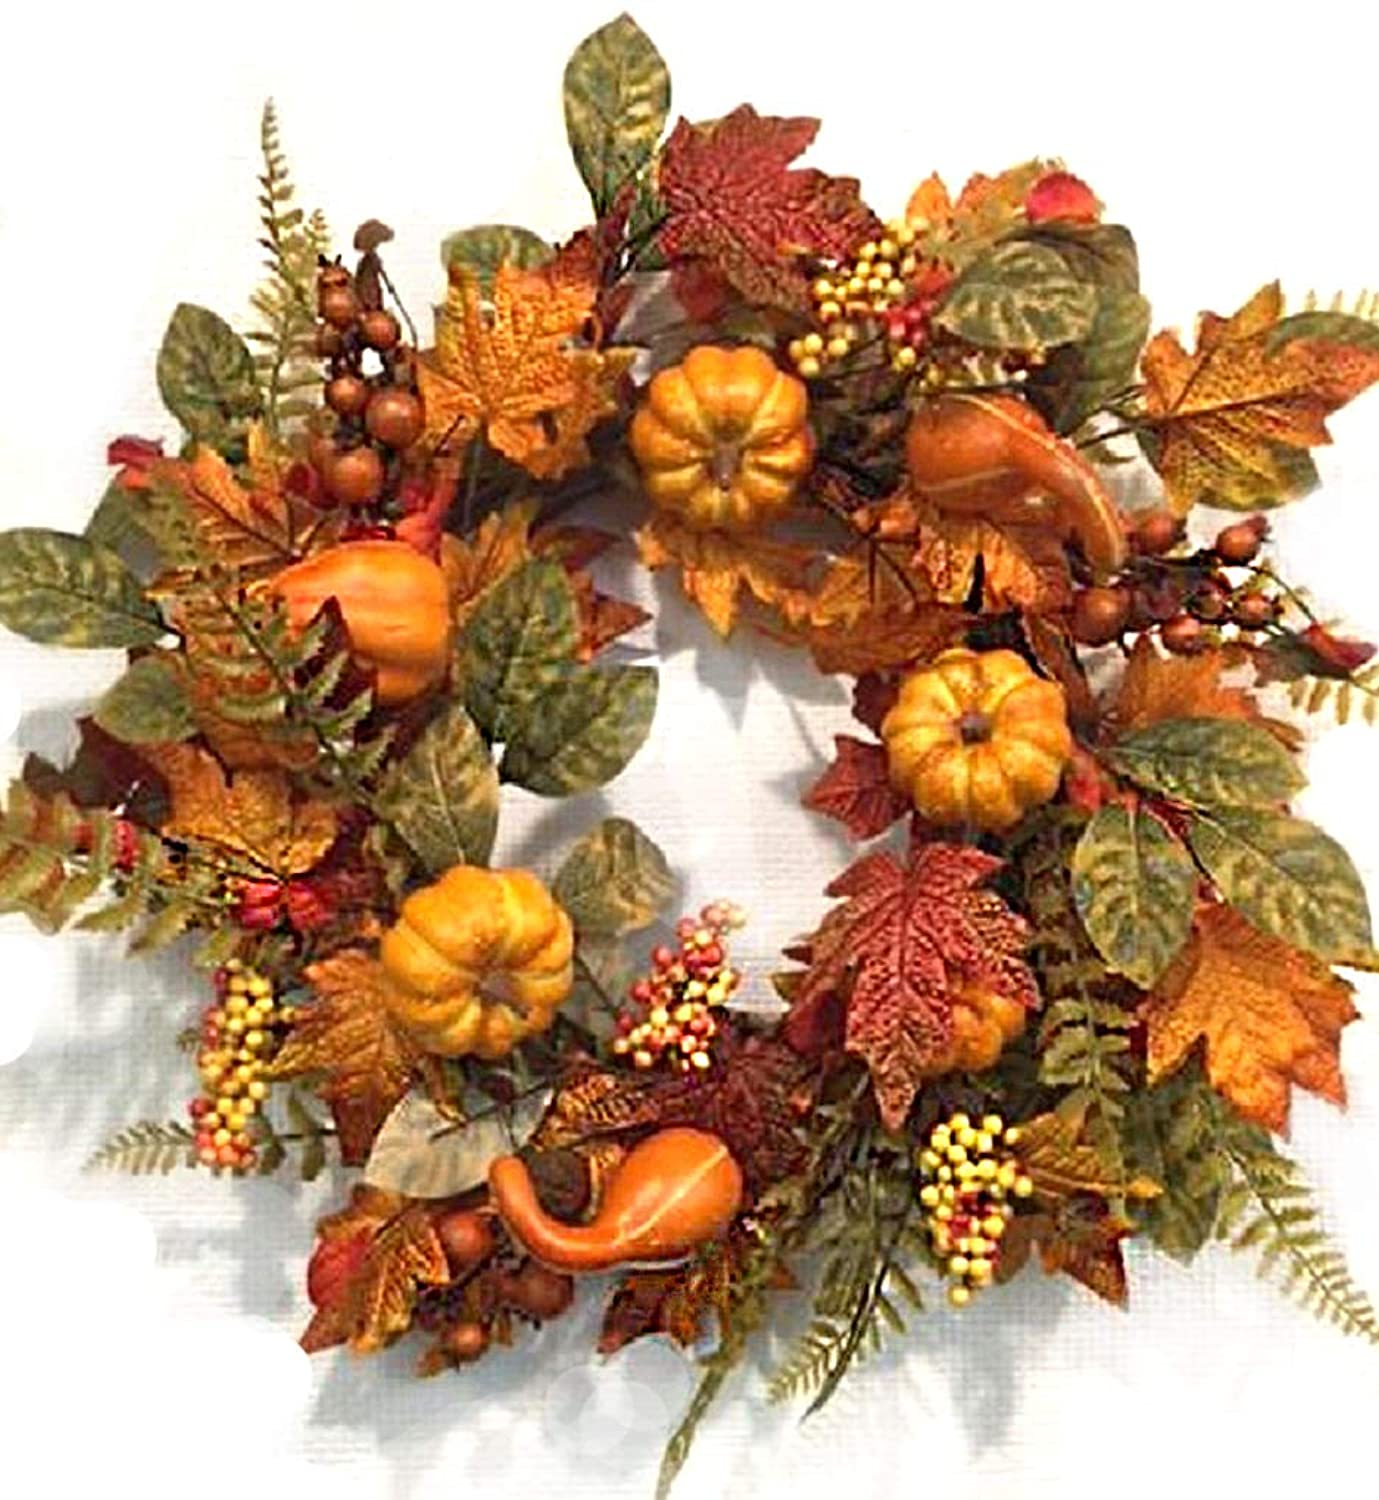 Pilgrims Harvest 22 Inch Fall Wreath for Front Door Faux Pumpkins Gourds Berries Maple Leaves Thanksgiving Decoration Indoor Seasonal Autumn Home Decor